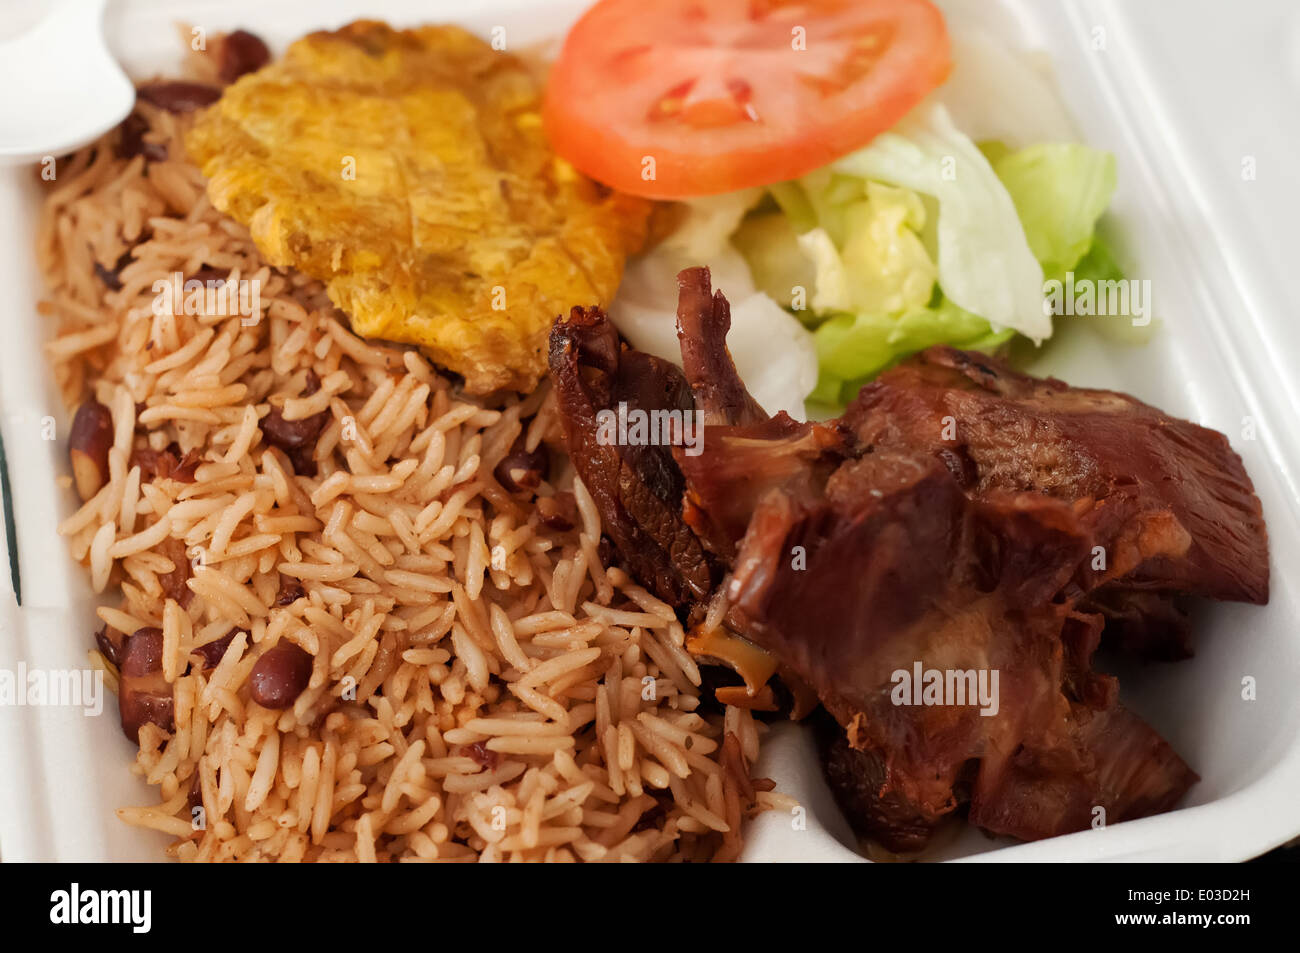 haitian food stock photos haitian food stock images alamy